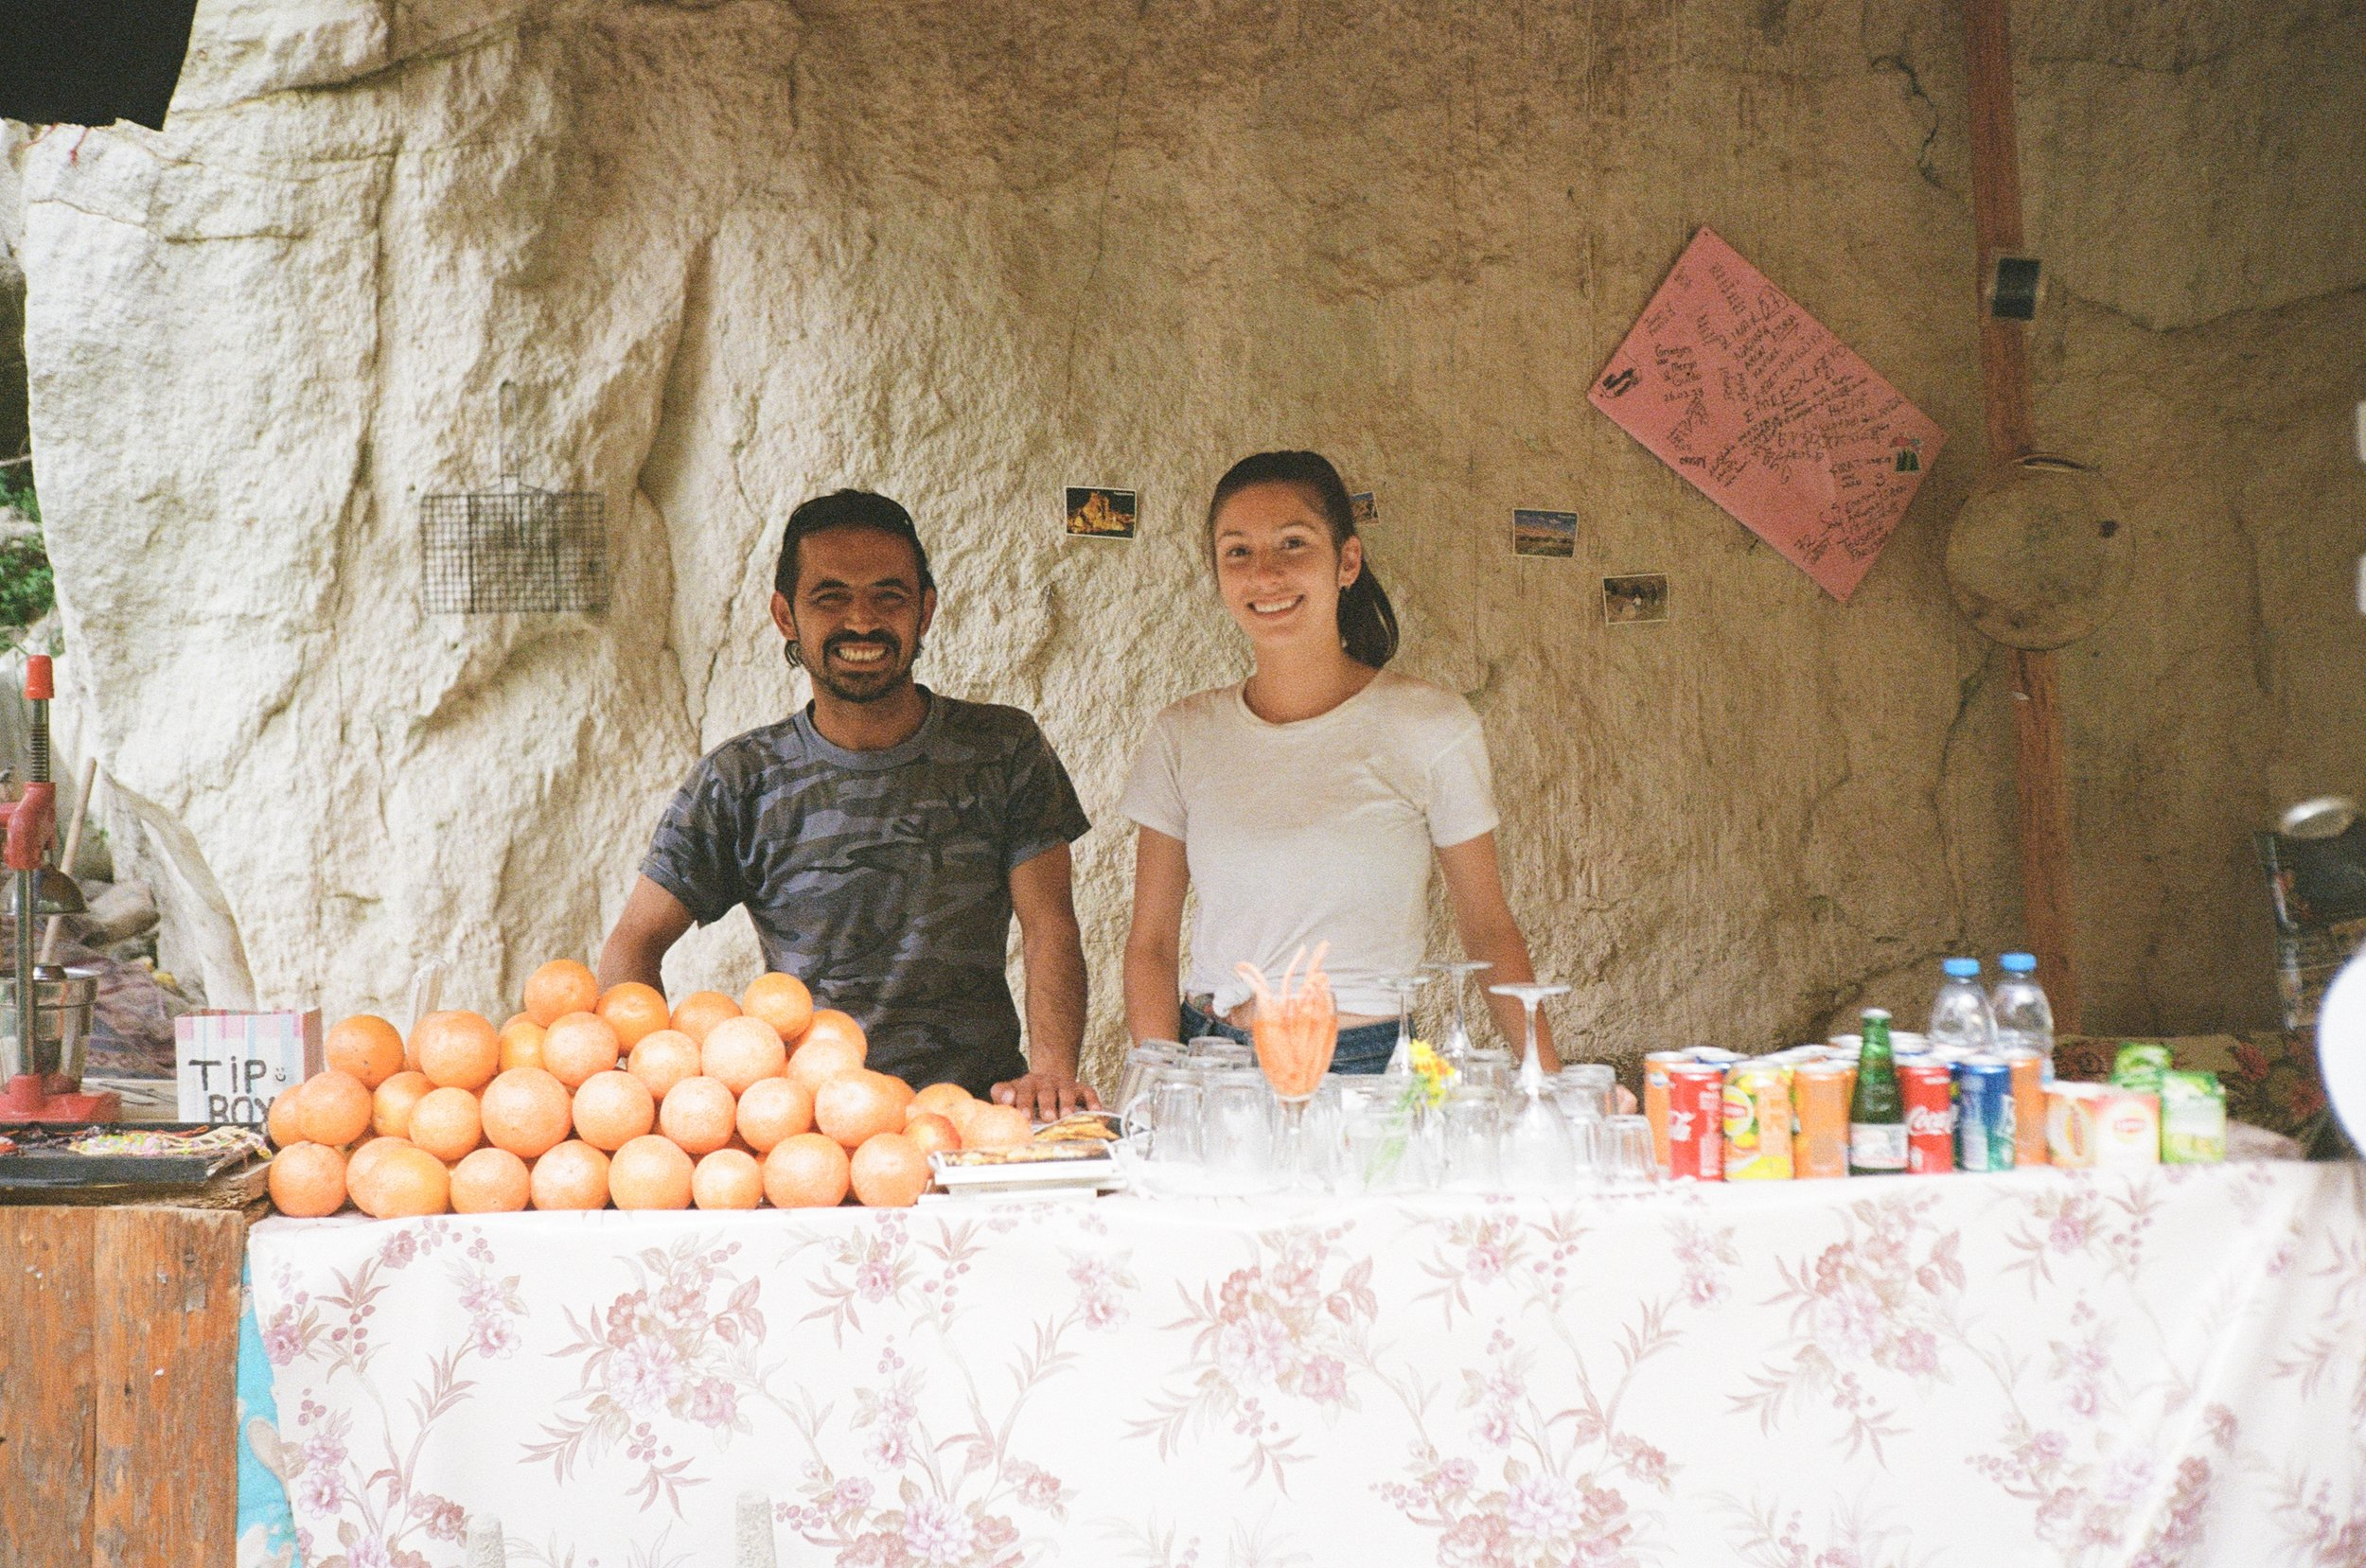 Kelly and Mustapha by his snack stall in 35mm